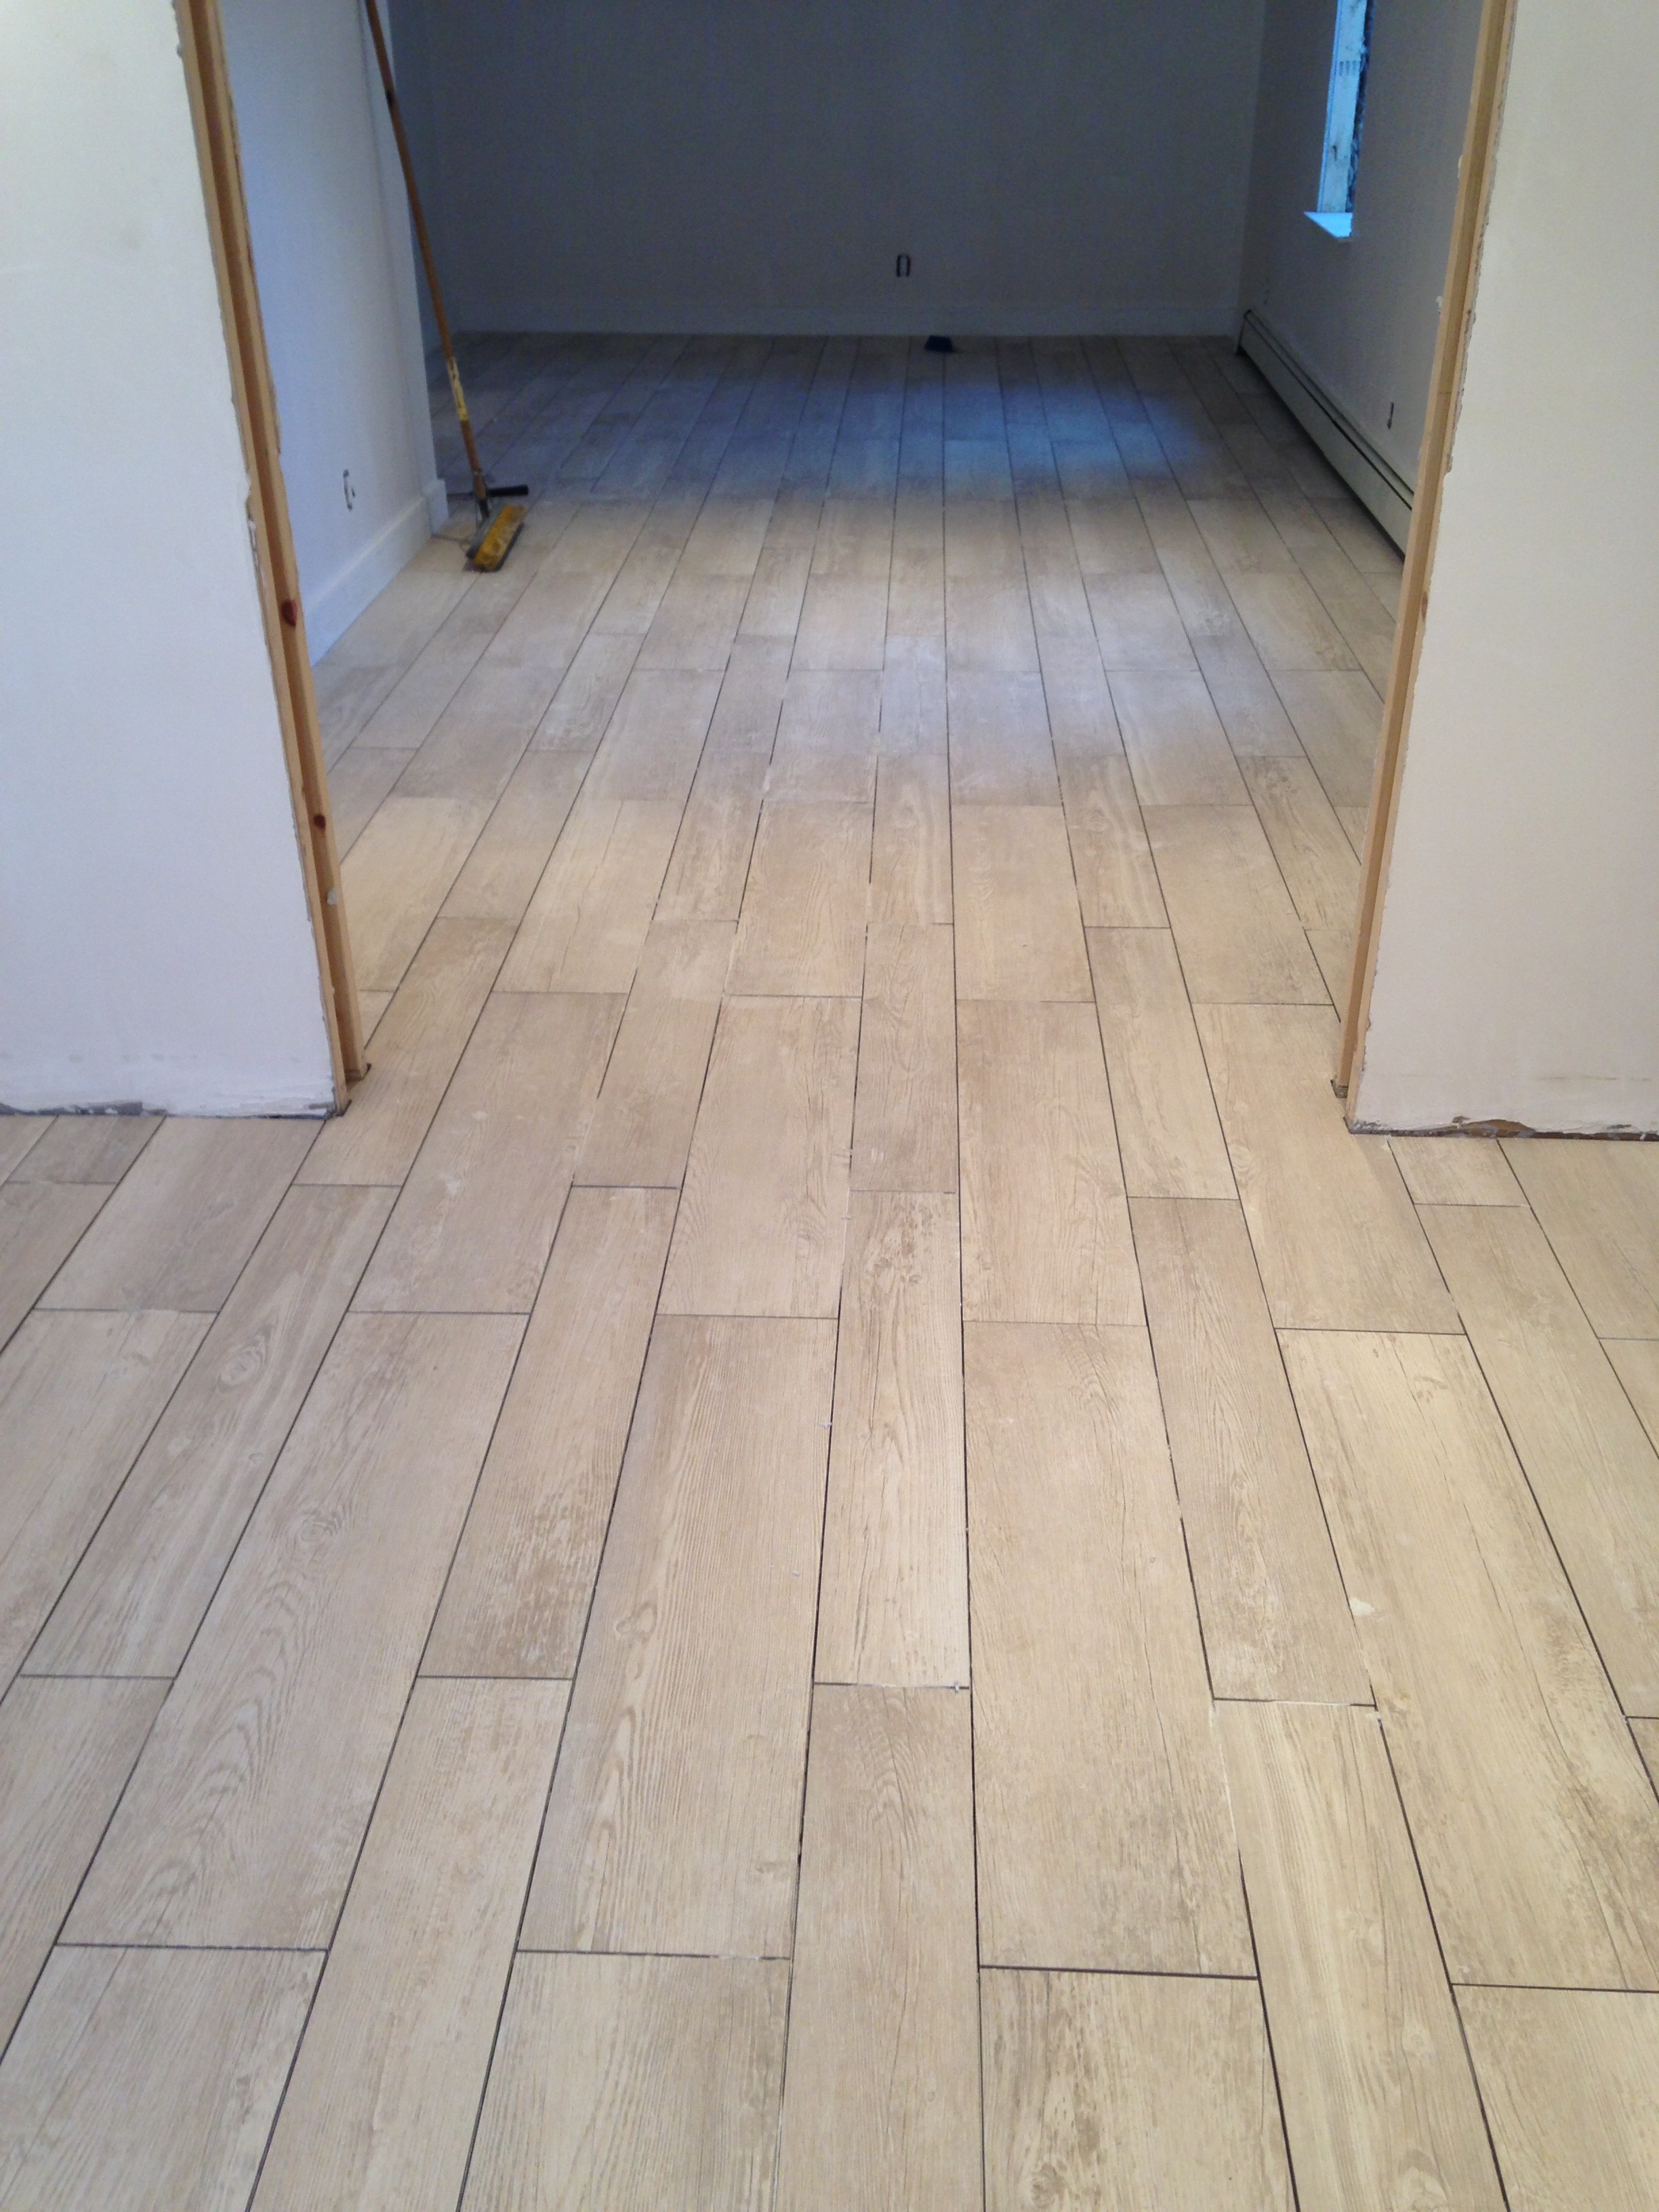 hardwood floor tile home depot of 18 luxury home depot hardwood floors collection dizpos com intended for home depot hardwood floors awesome ceramic tile wood look plank floor youtube planks porcelainat looks pictures